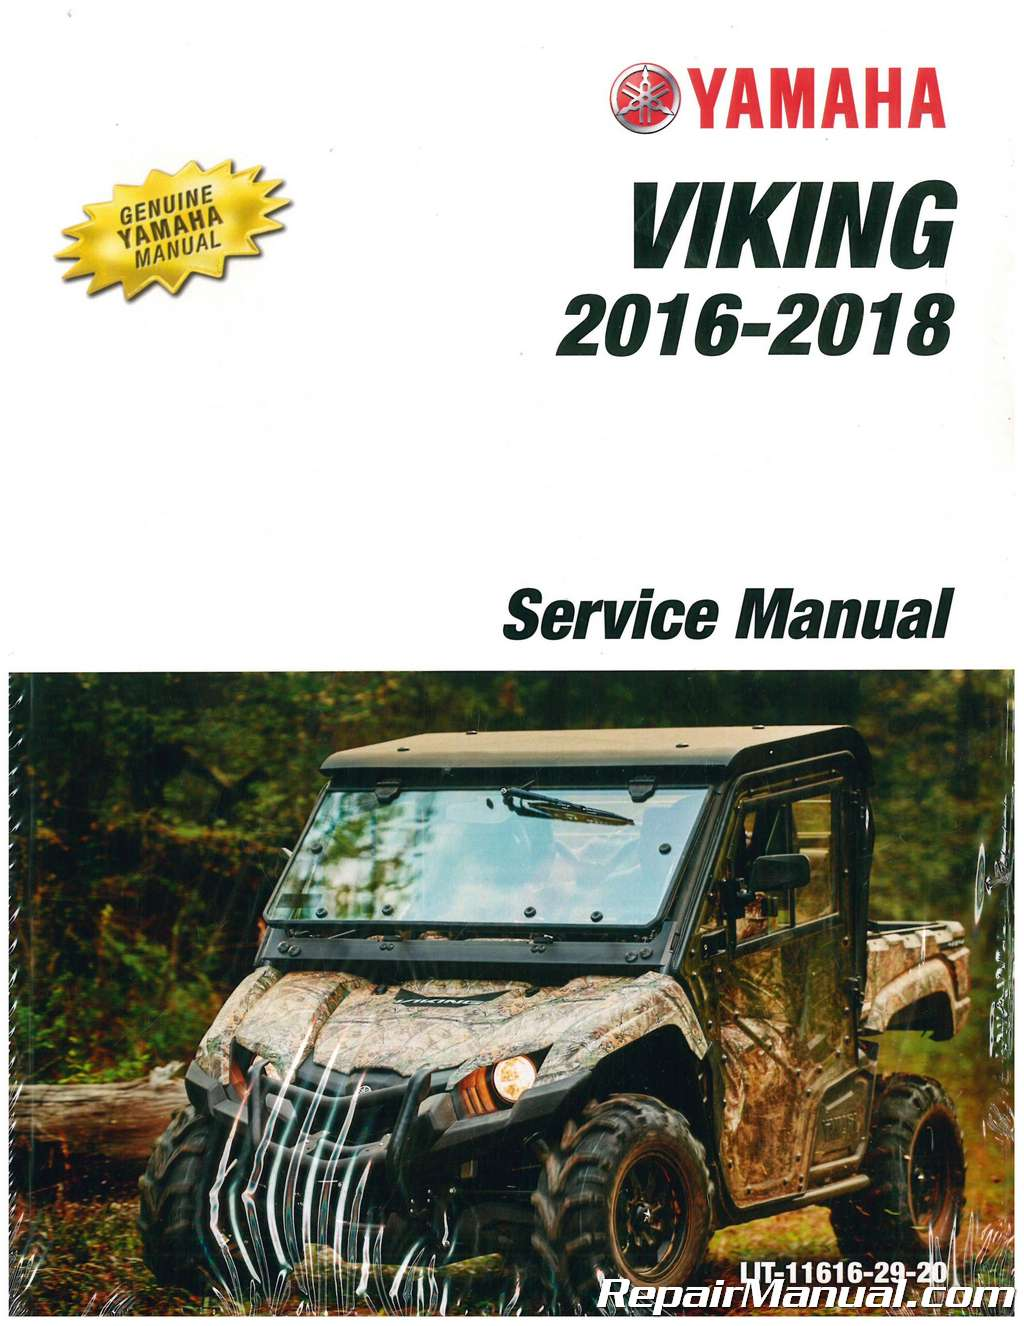 2016 2018 yamaha viking 686cc side x side factory service manual rh repairmanual com Yamaha XJ550 Cafe Racer yamaha xj550 service manual pdf